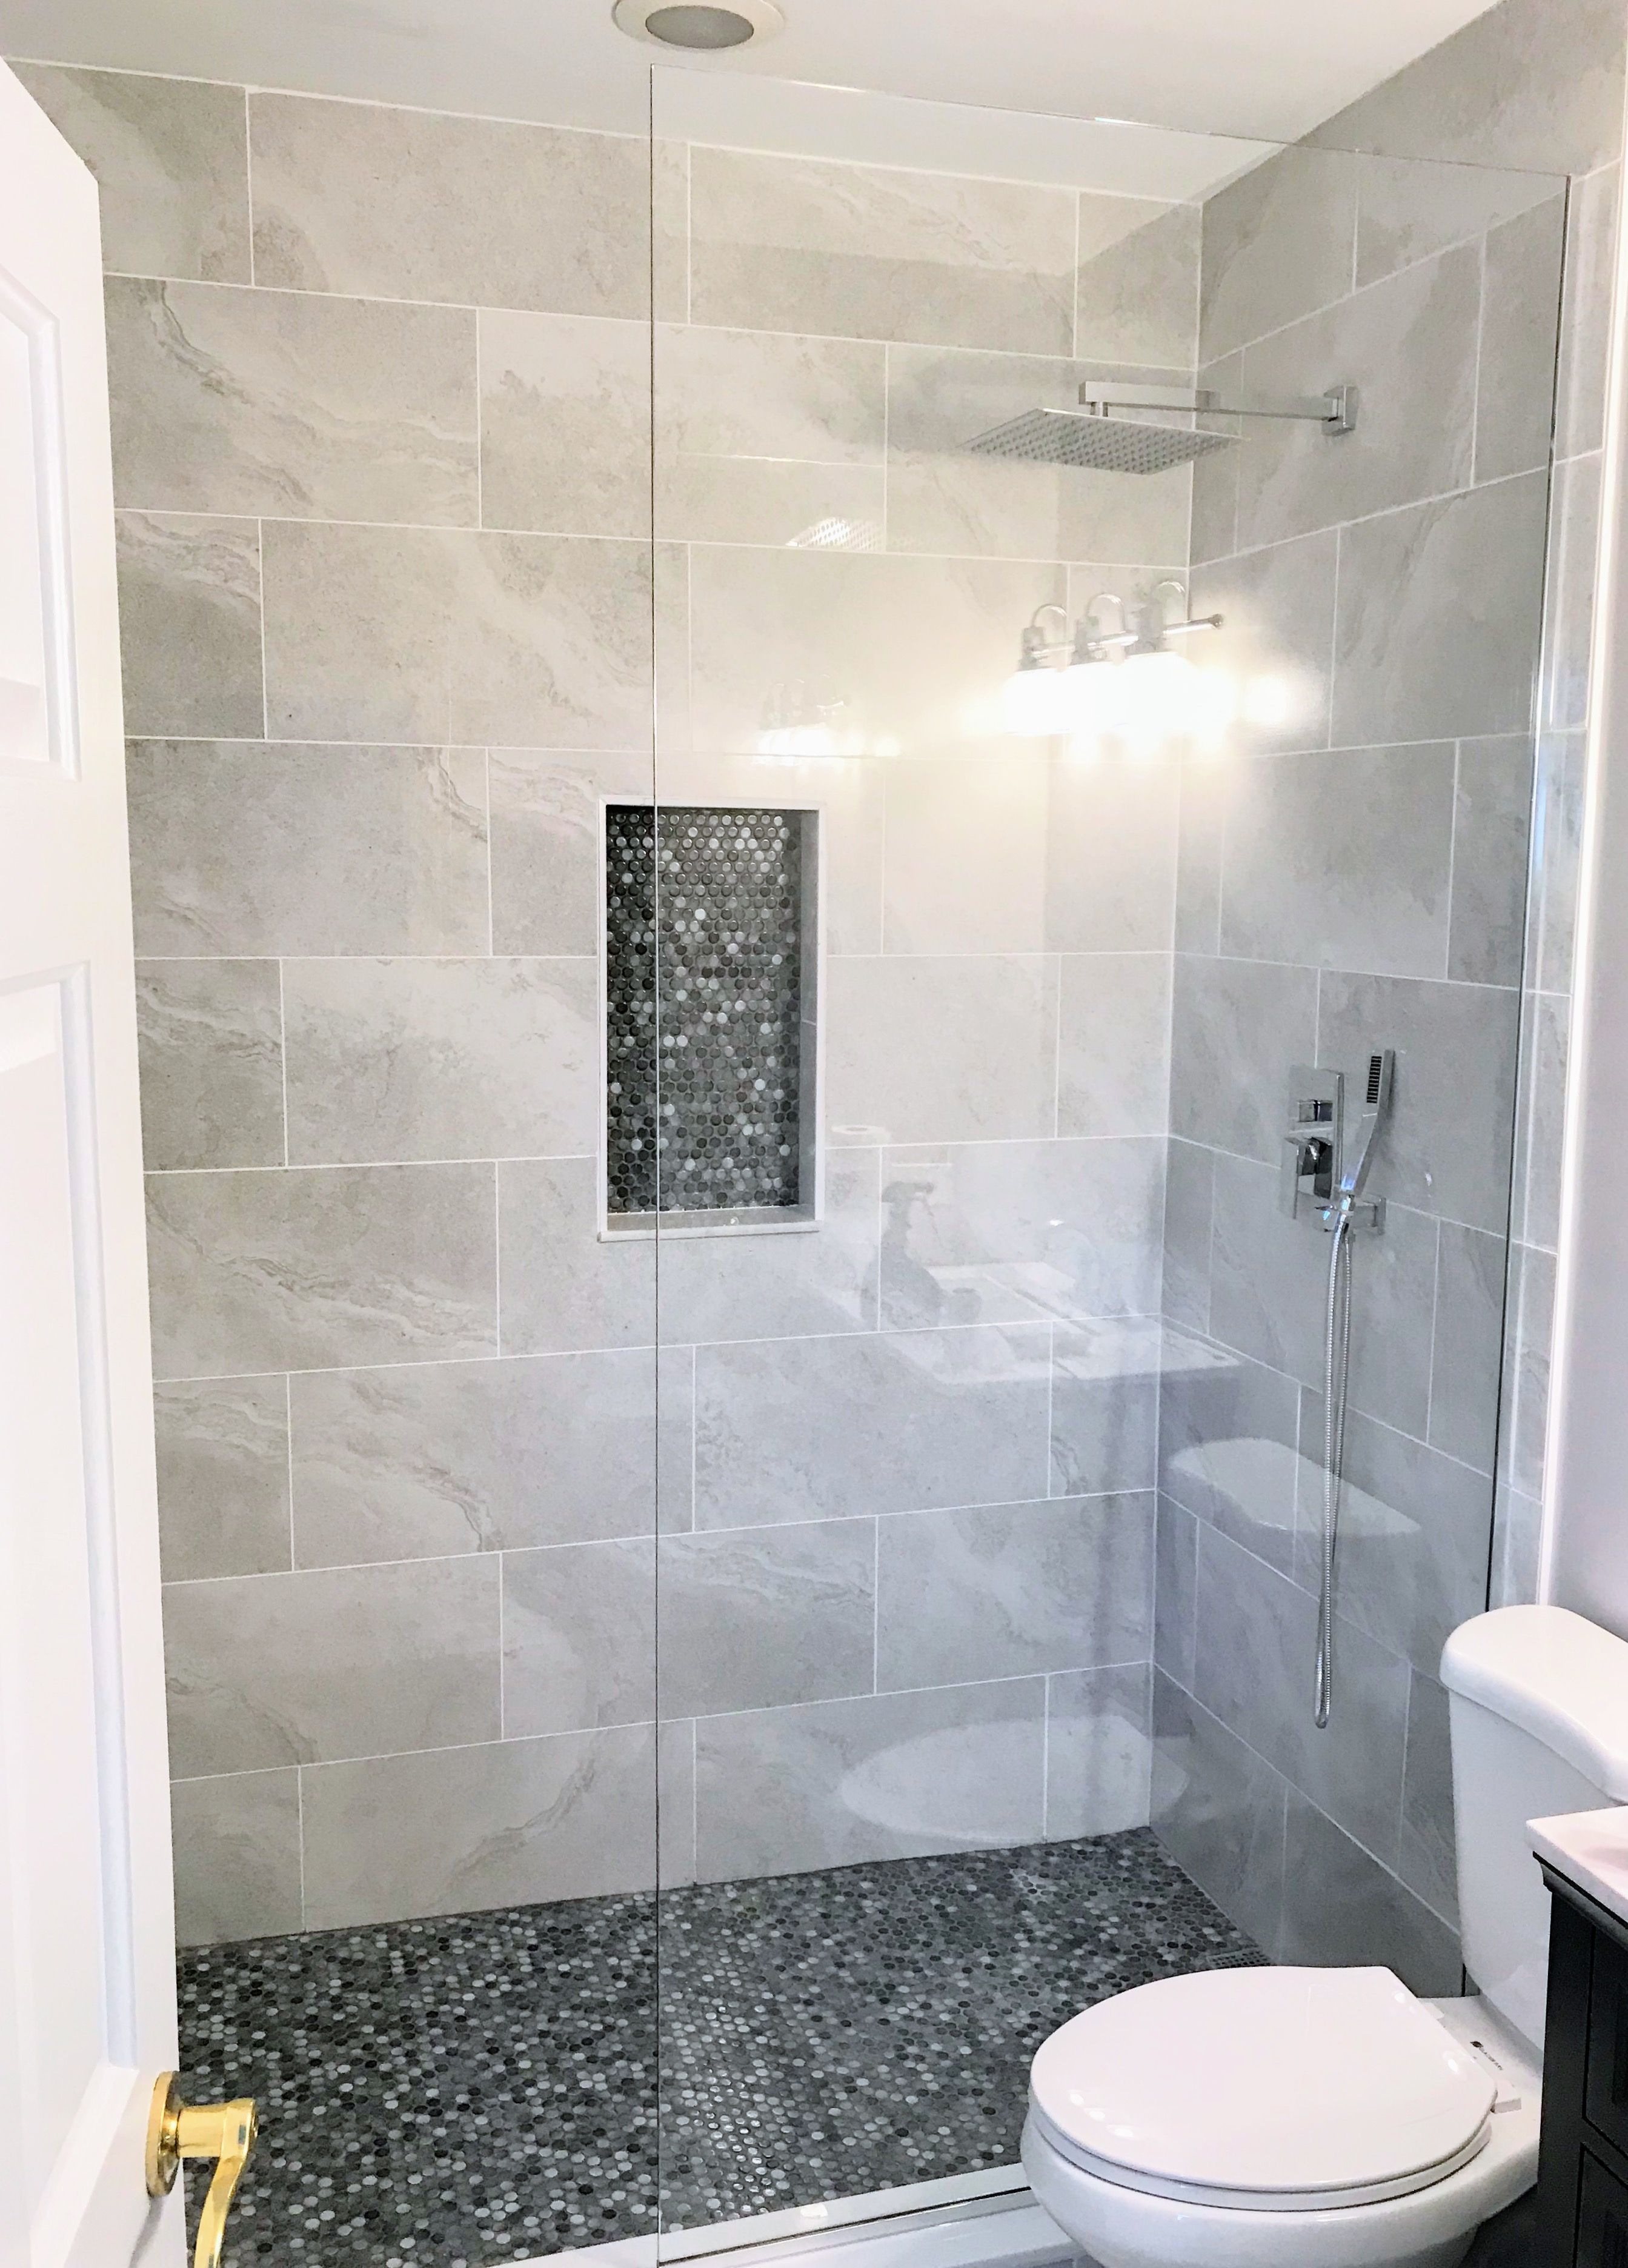 Simple Is Better Custom Shower Glass Low Iron Ultra Clear Shower Glass In Chicago By Ultimate Glass Art Shower Panels Cheap Bathroom Faucets Bathrooms Remodel